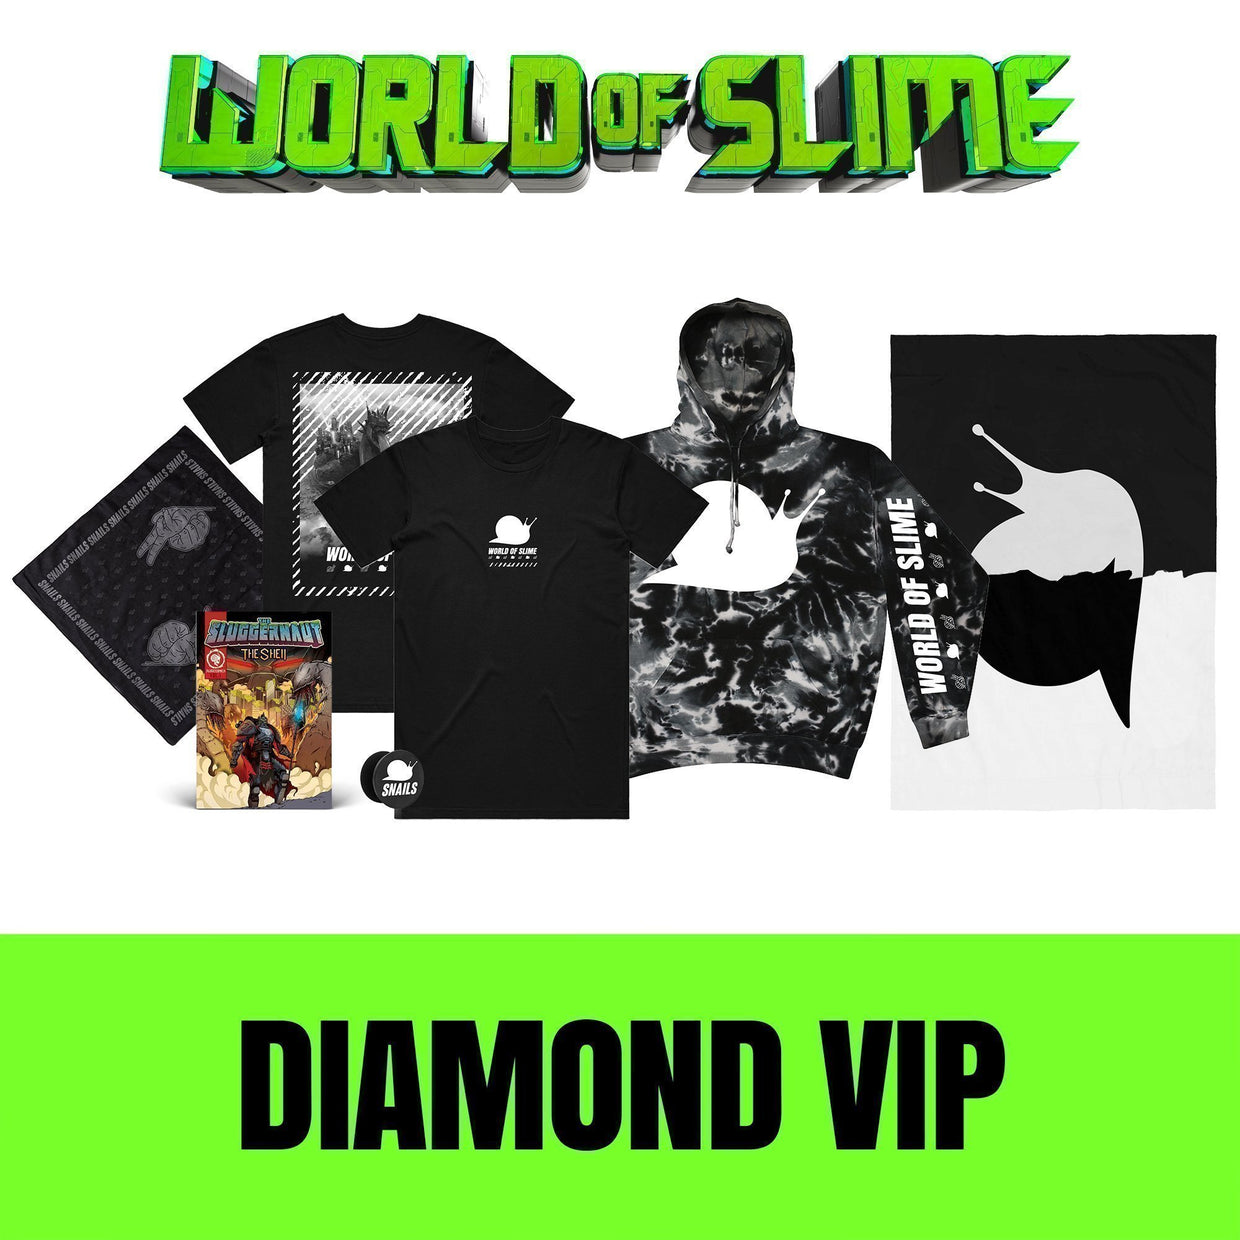 World Of Slime Tour - Brooklyn, NY - 12/15